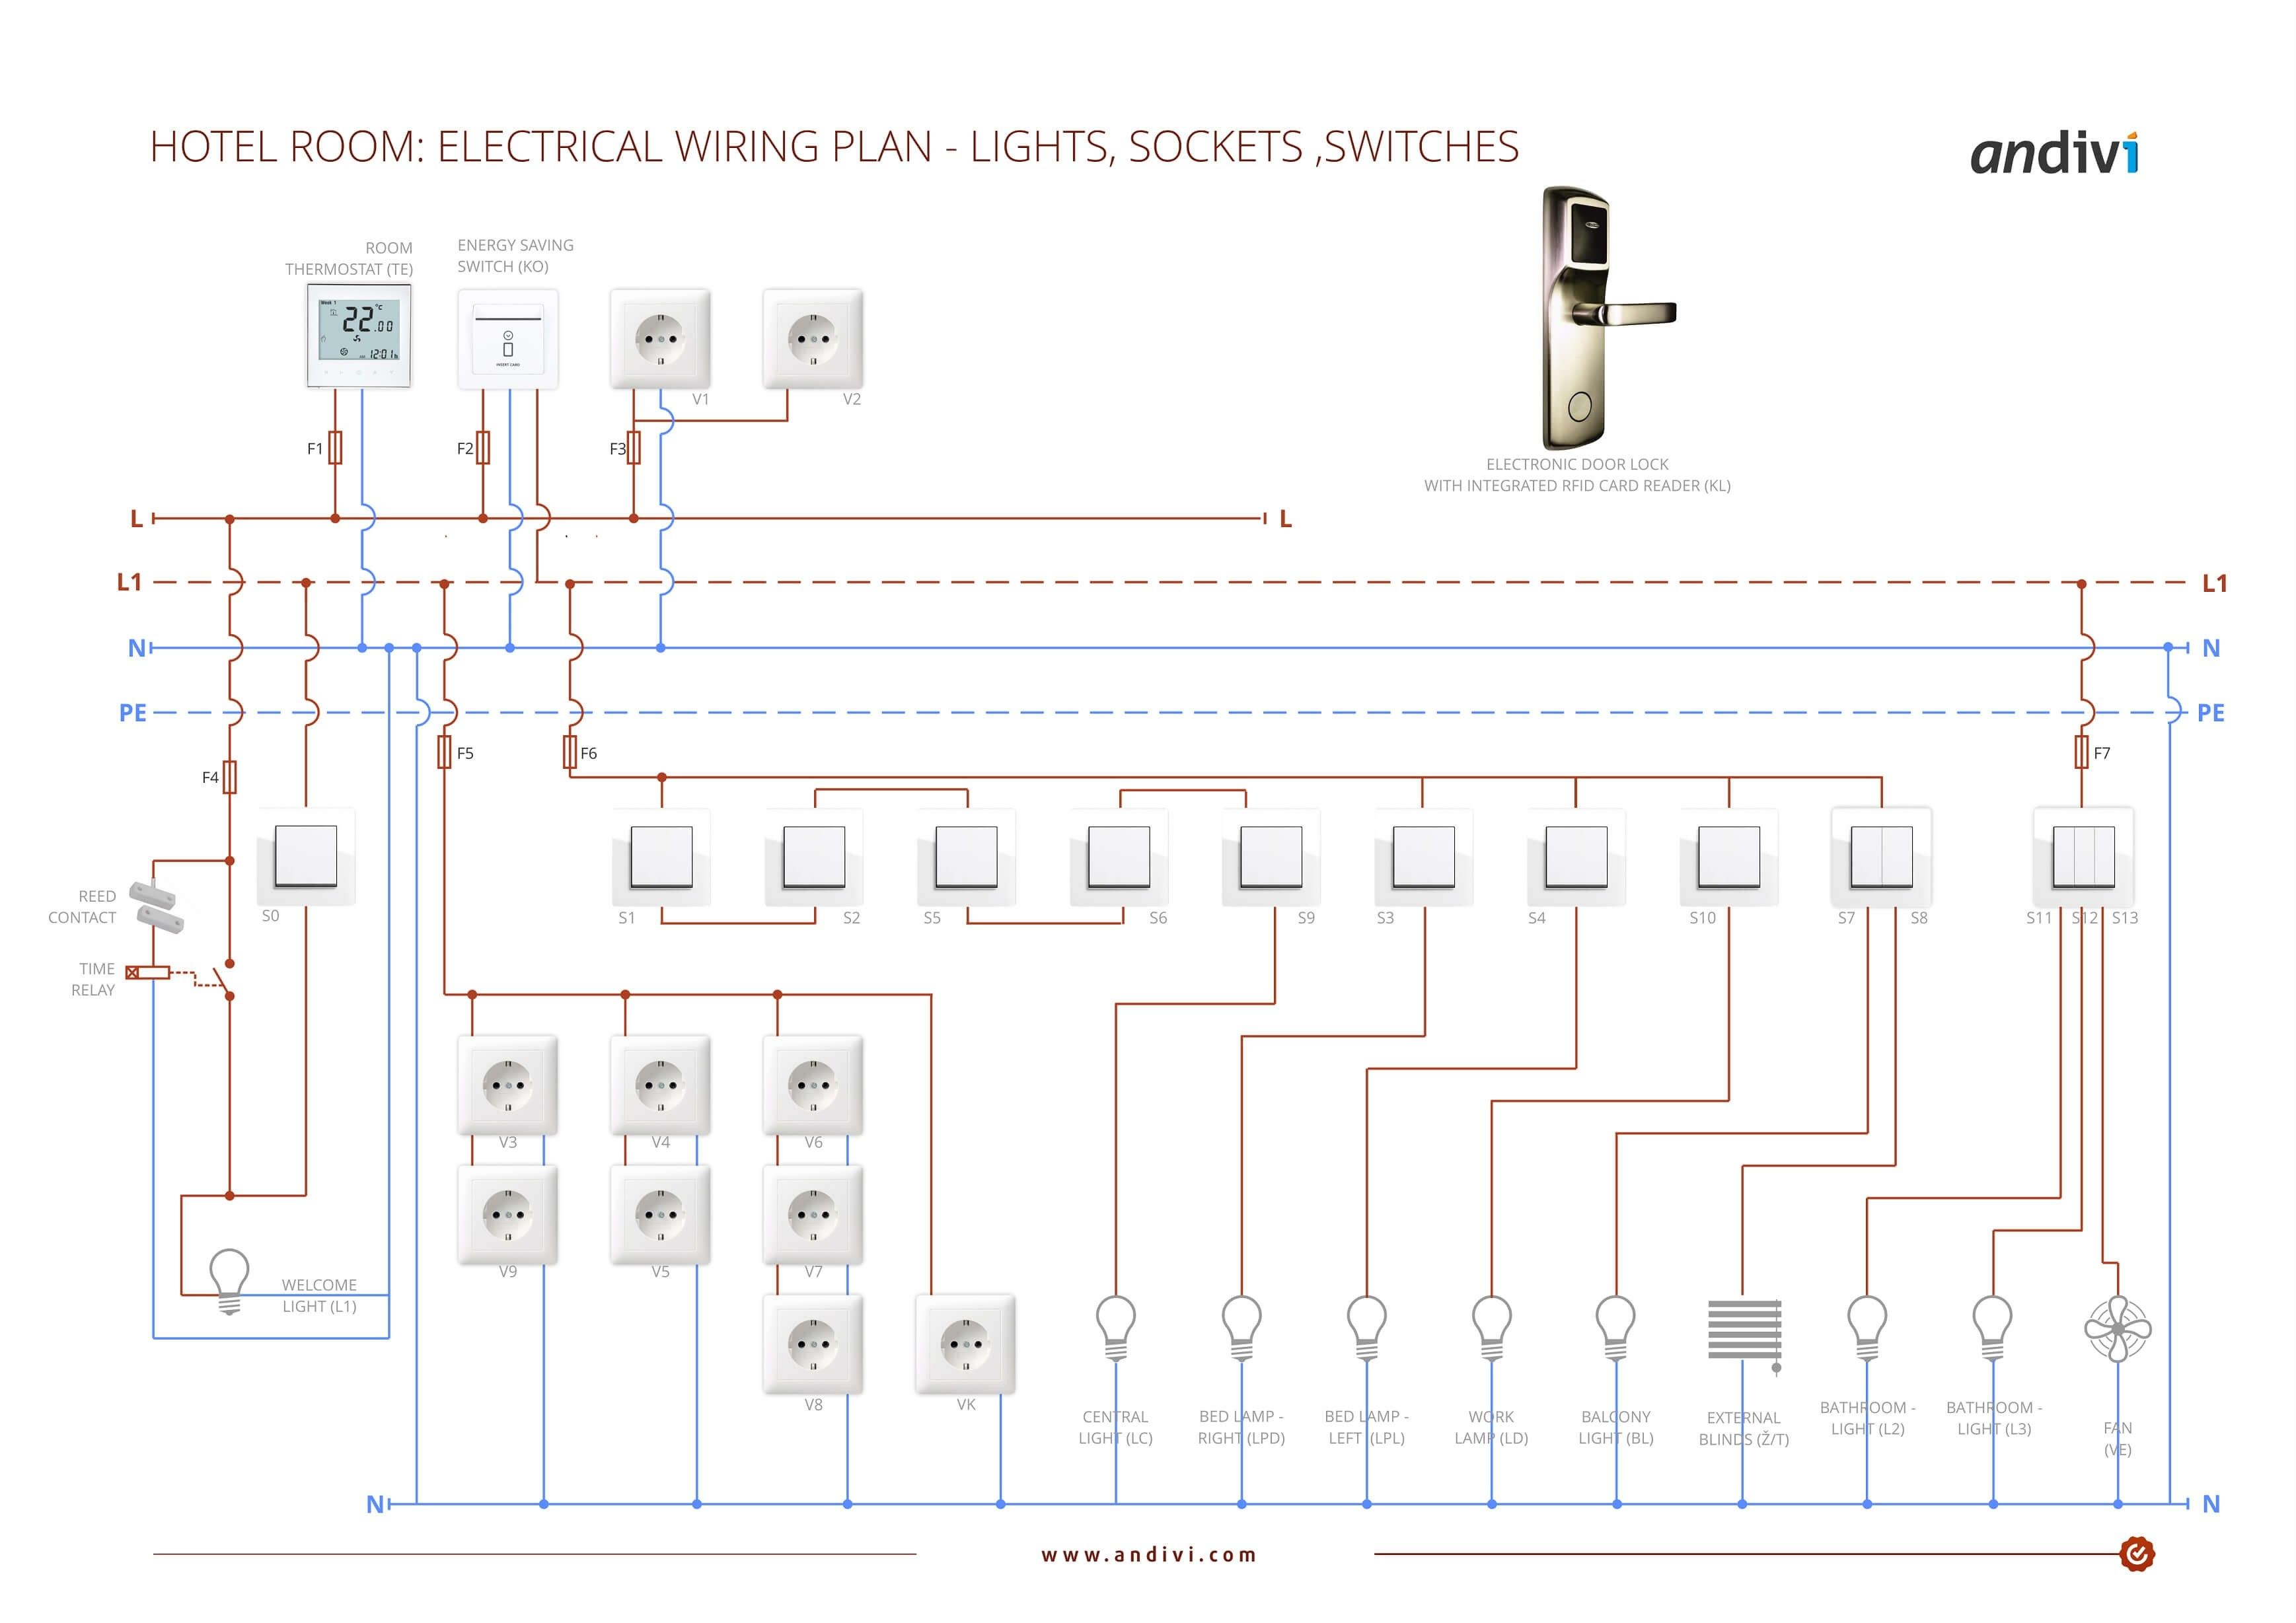 Unique Wiring A Bedroom Circuit Diagram Wiringdiagram Diagramming Diagramm Visuals Visualisation Gr Electrical Layout Diagram Electrical Circuit Diagram